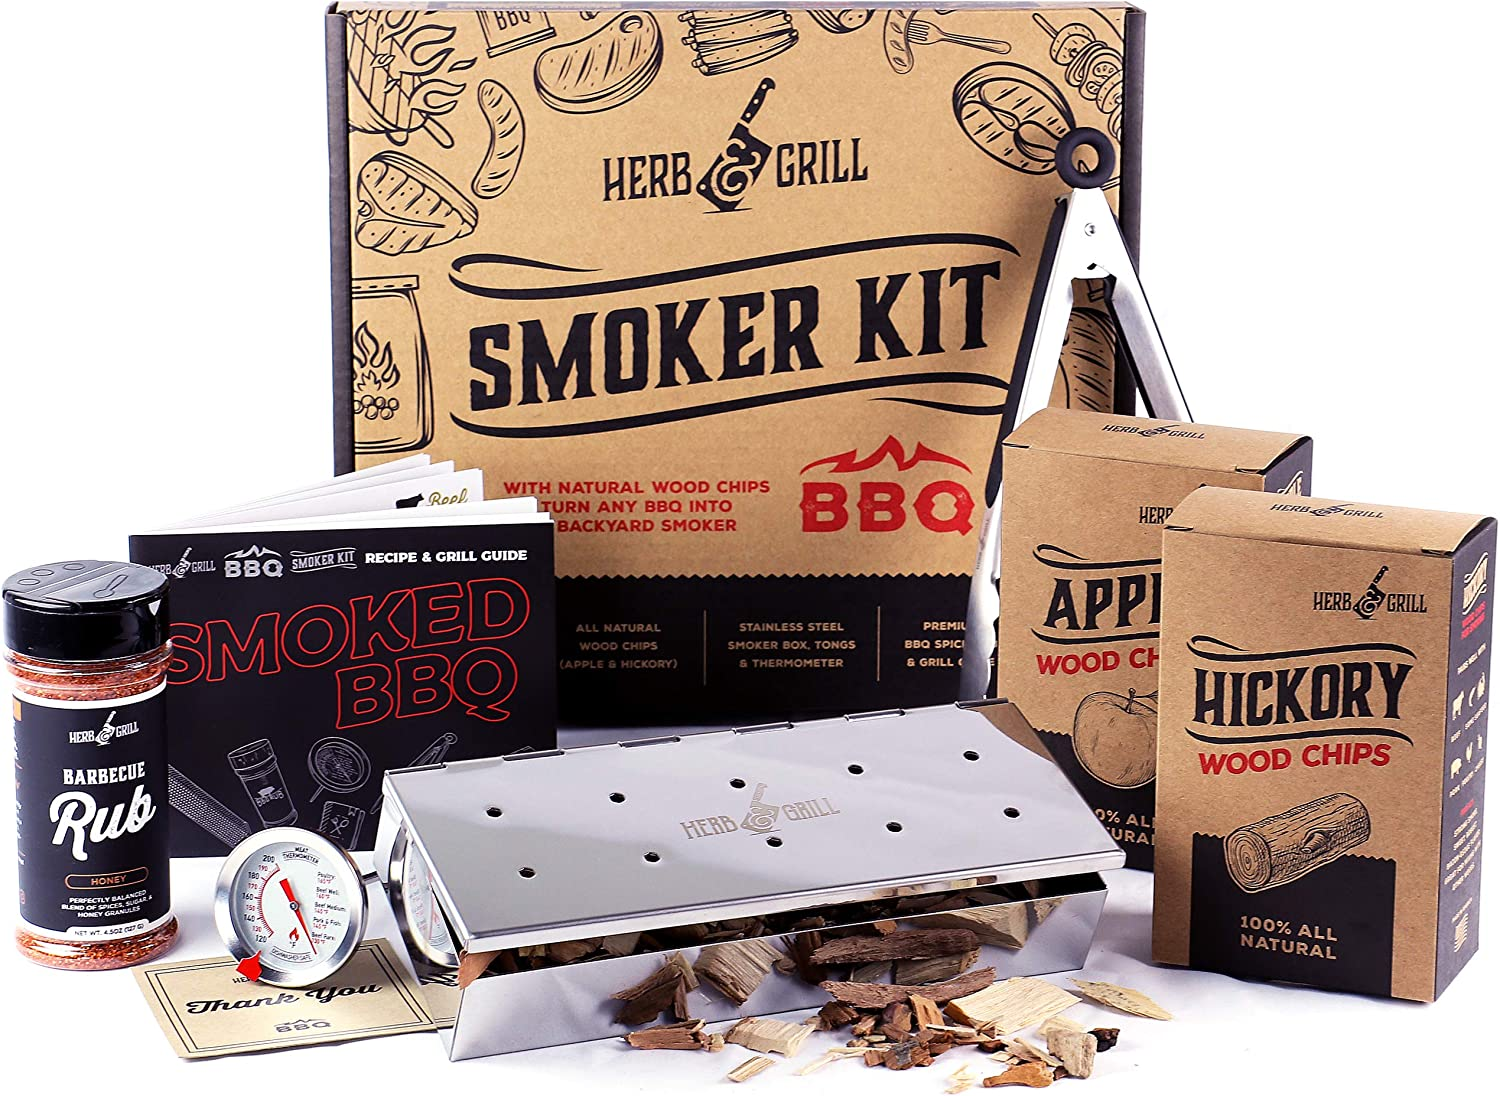 Herb & Grill 7 Piece BBQ Cooking Gift Set for Dad | Smoking Wood Chip Smoker Box with Honey BBQ Rub | Fun & Easy